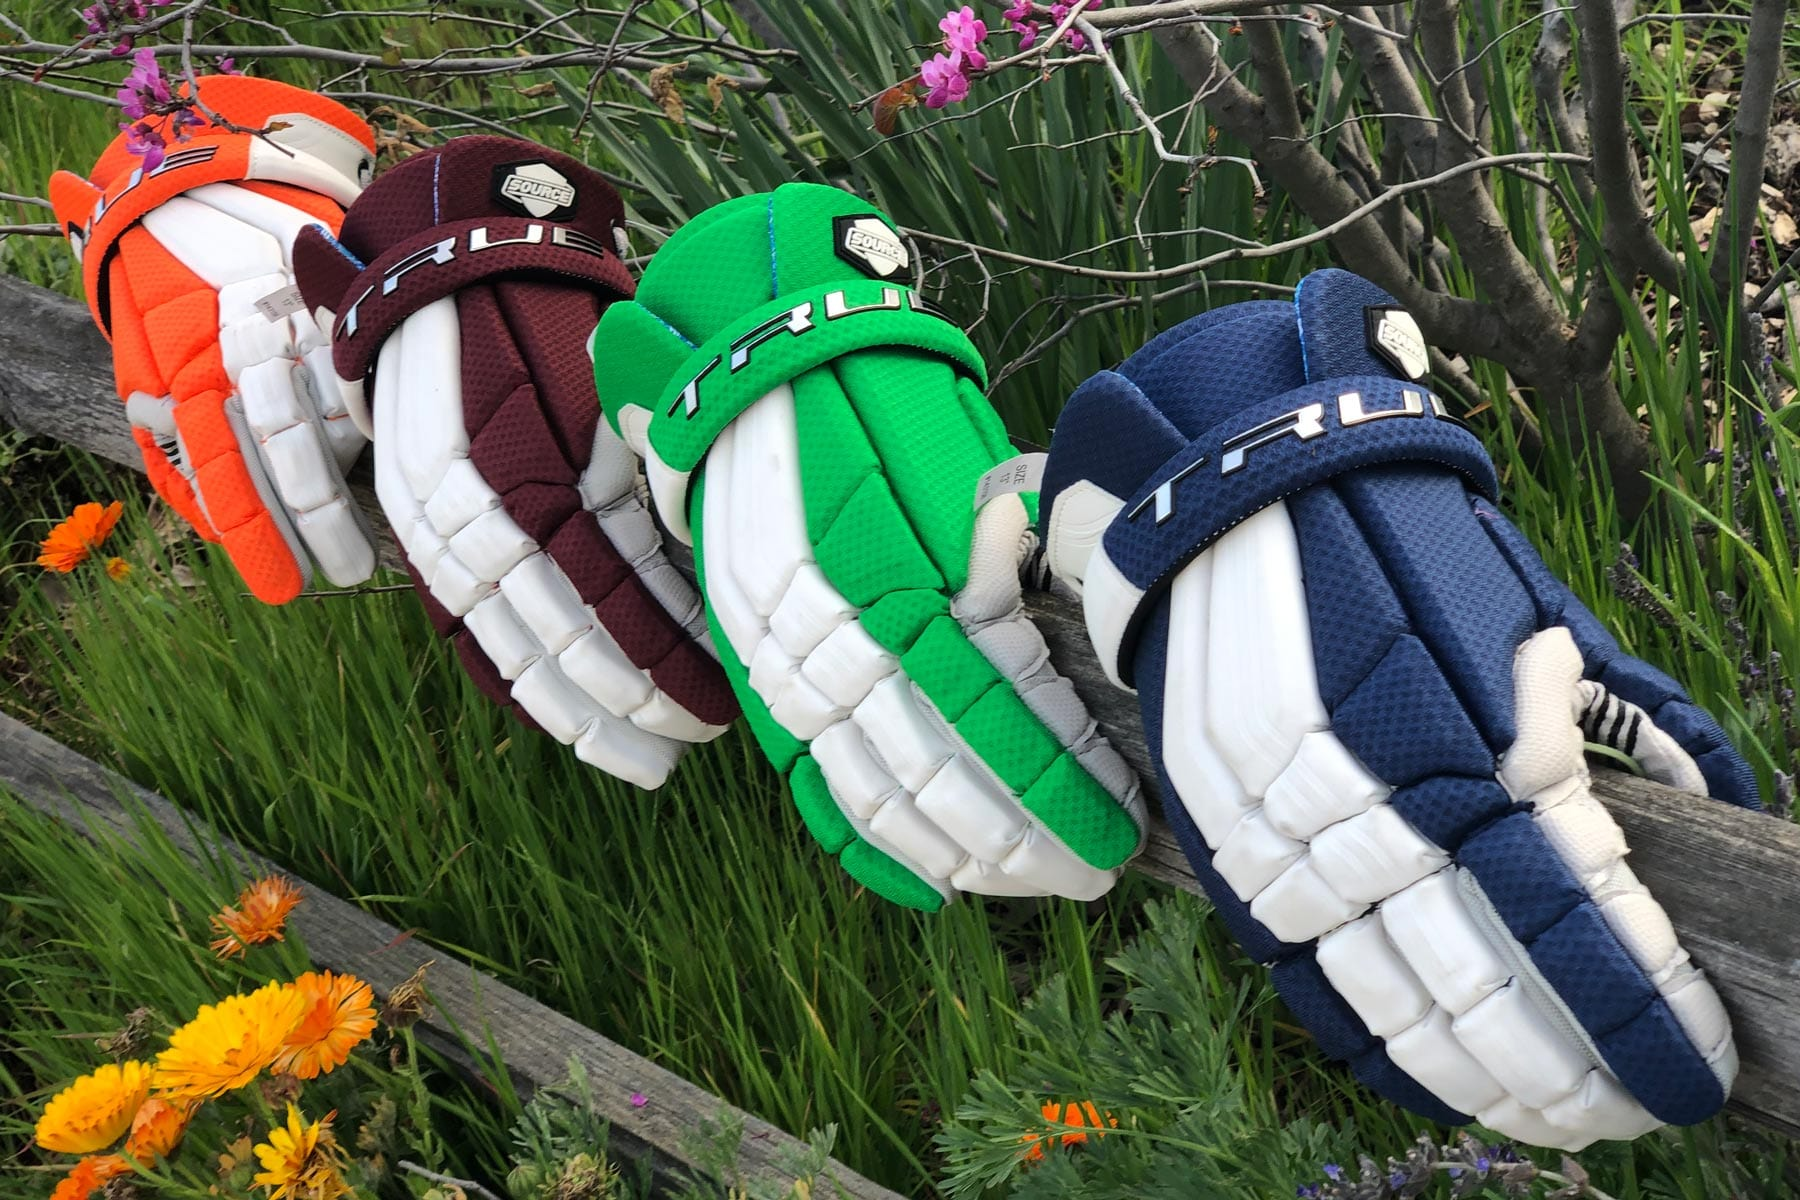 Custom gloves in your team colors from Lacrosse Fanatic